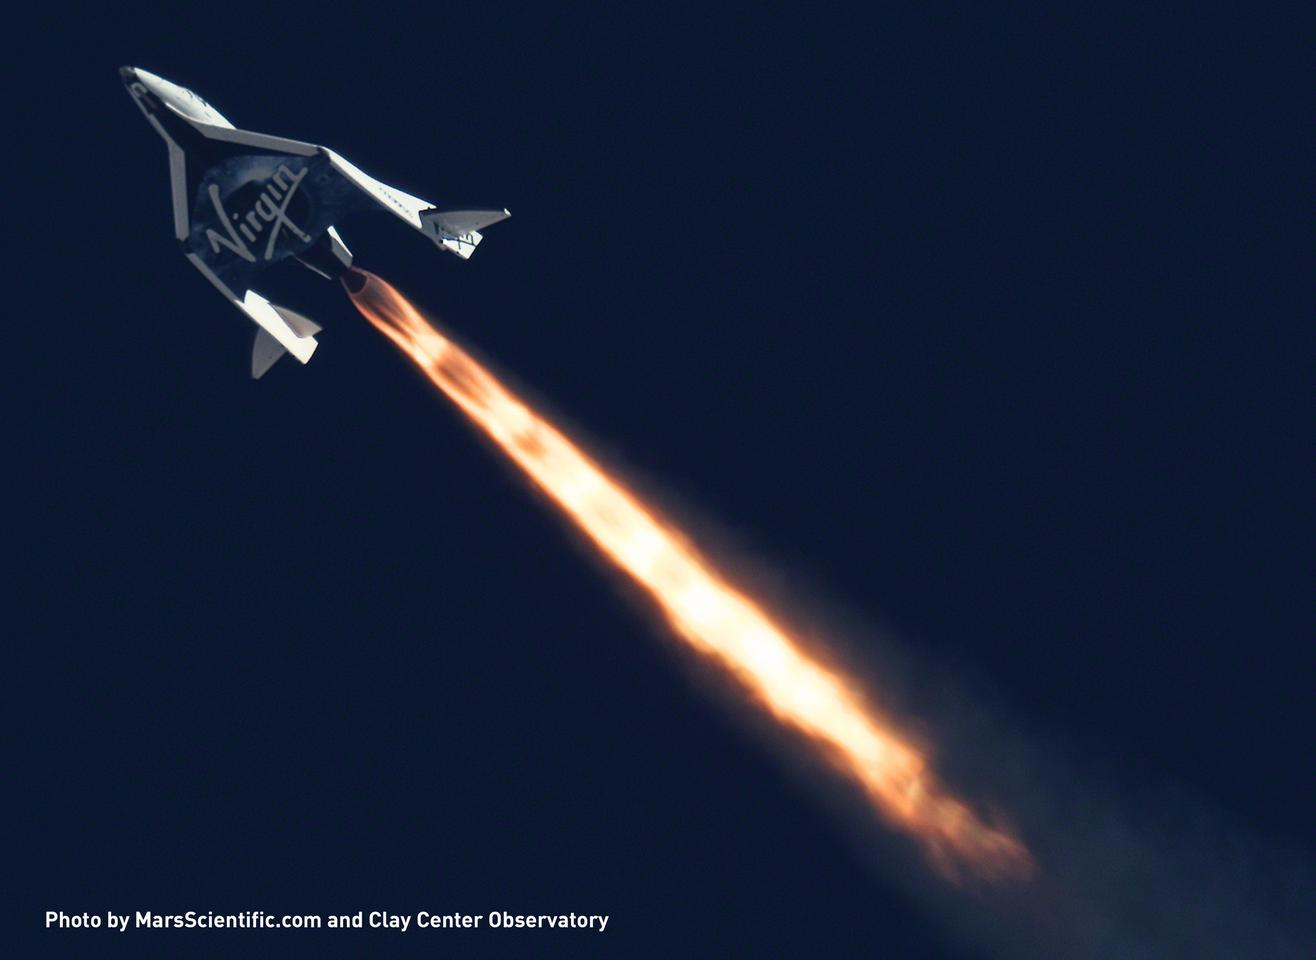 SpaceShipTwo broke the altitude and speed record that it set in April